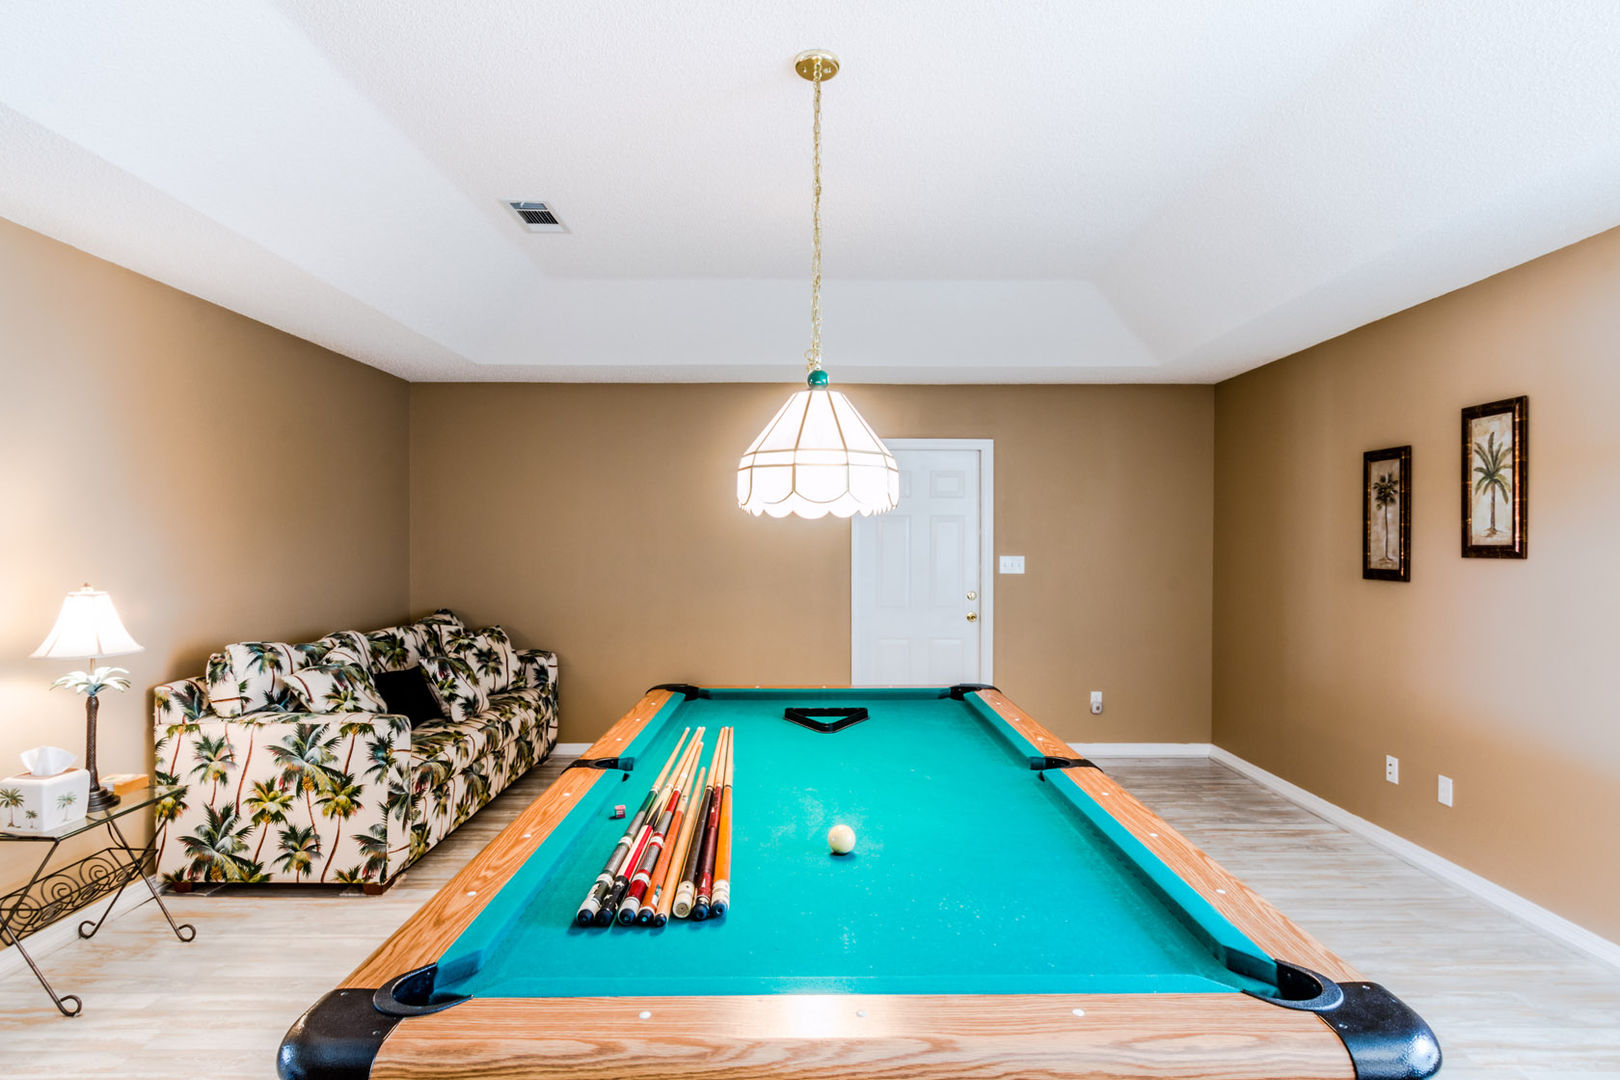 The Gameroom Has A Full Size Pool Table.